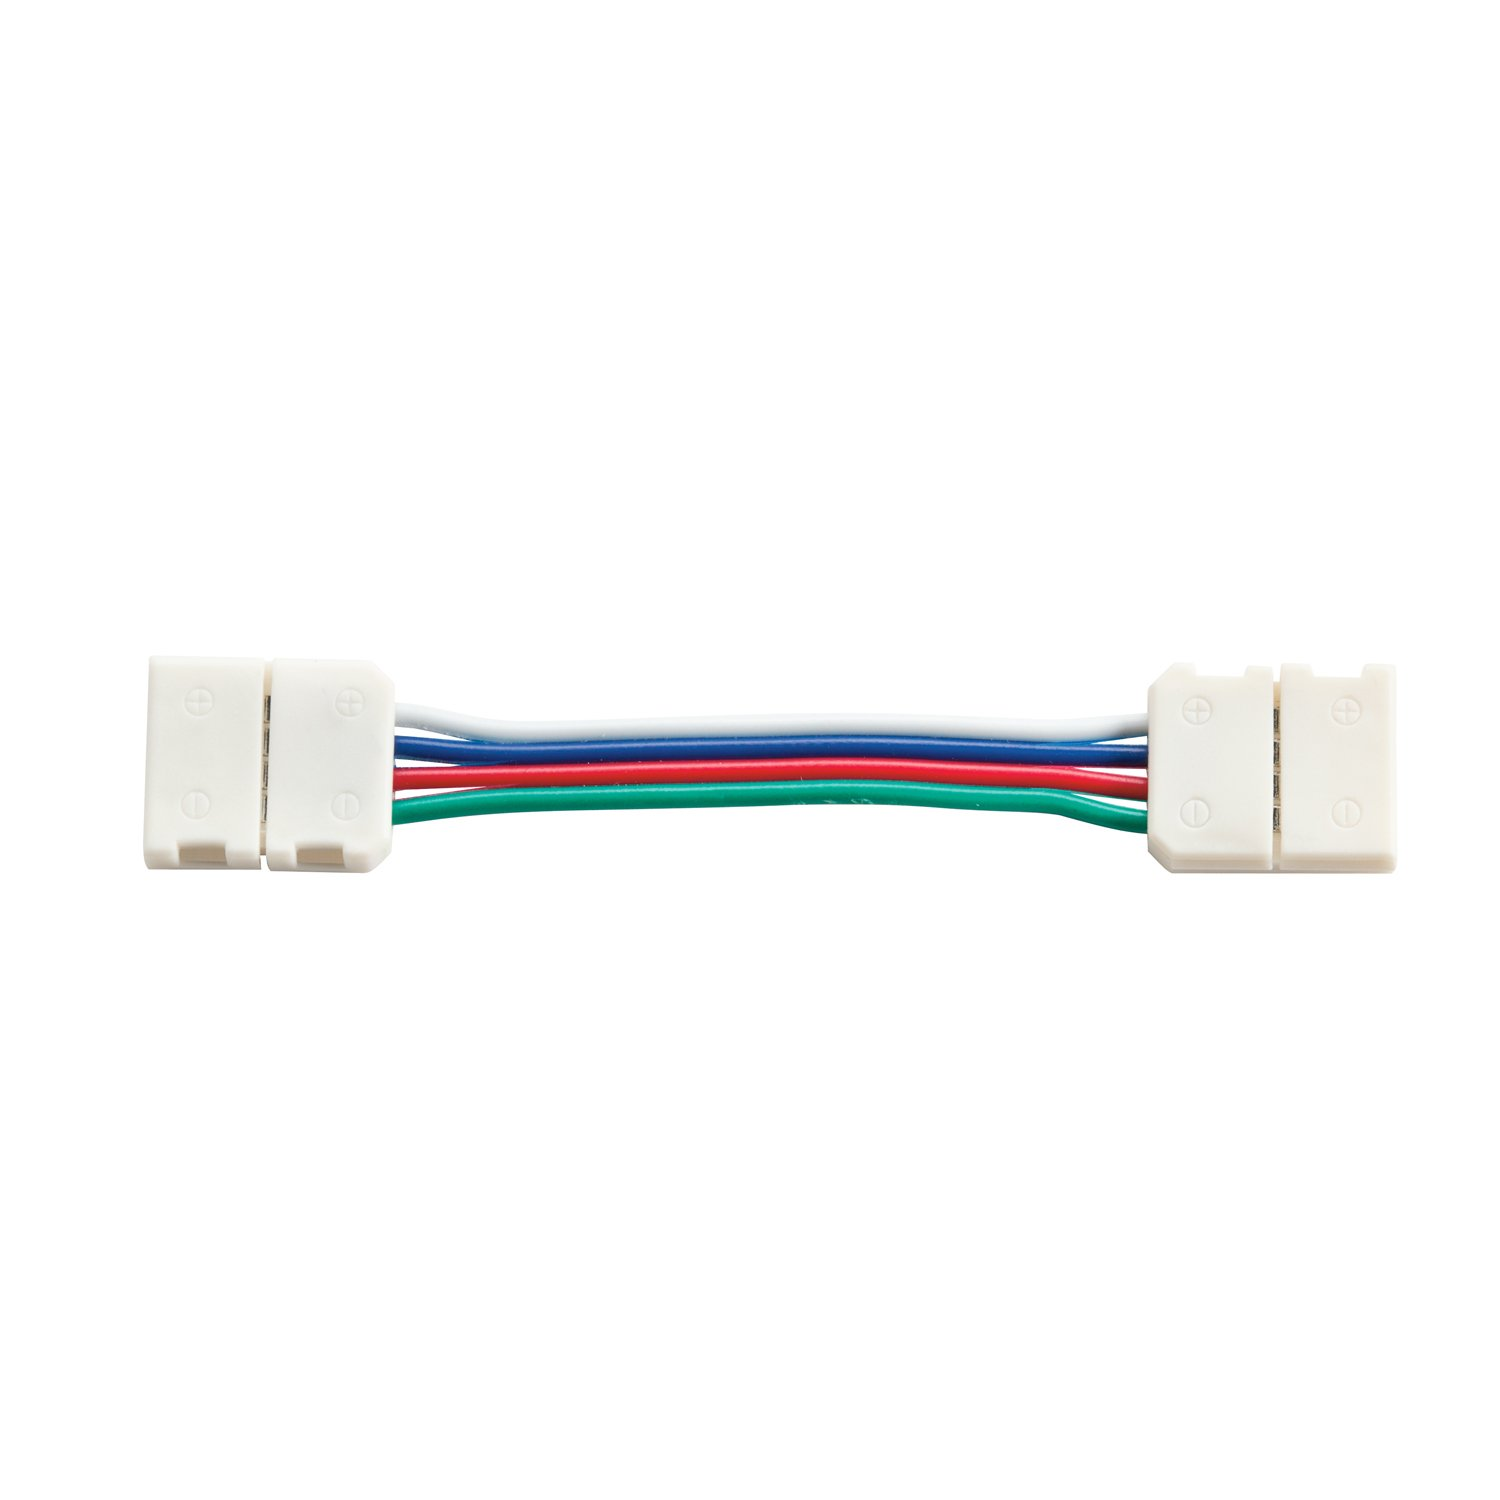 Kichler 1IC02RGBWH Dry Tape Accessory LED Tape 2-Inch Interconnect, White Material (Not Painted) by KICHLER